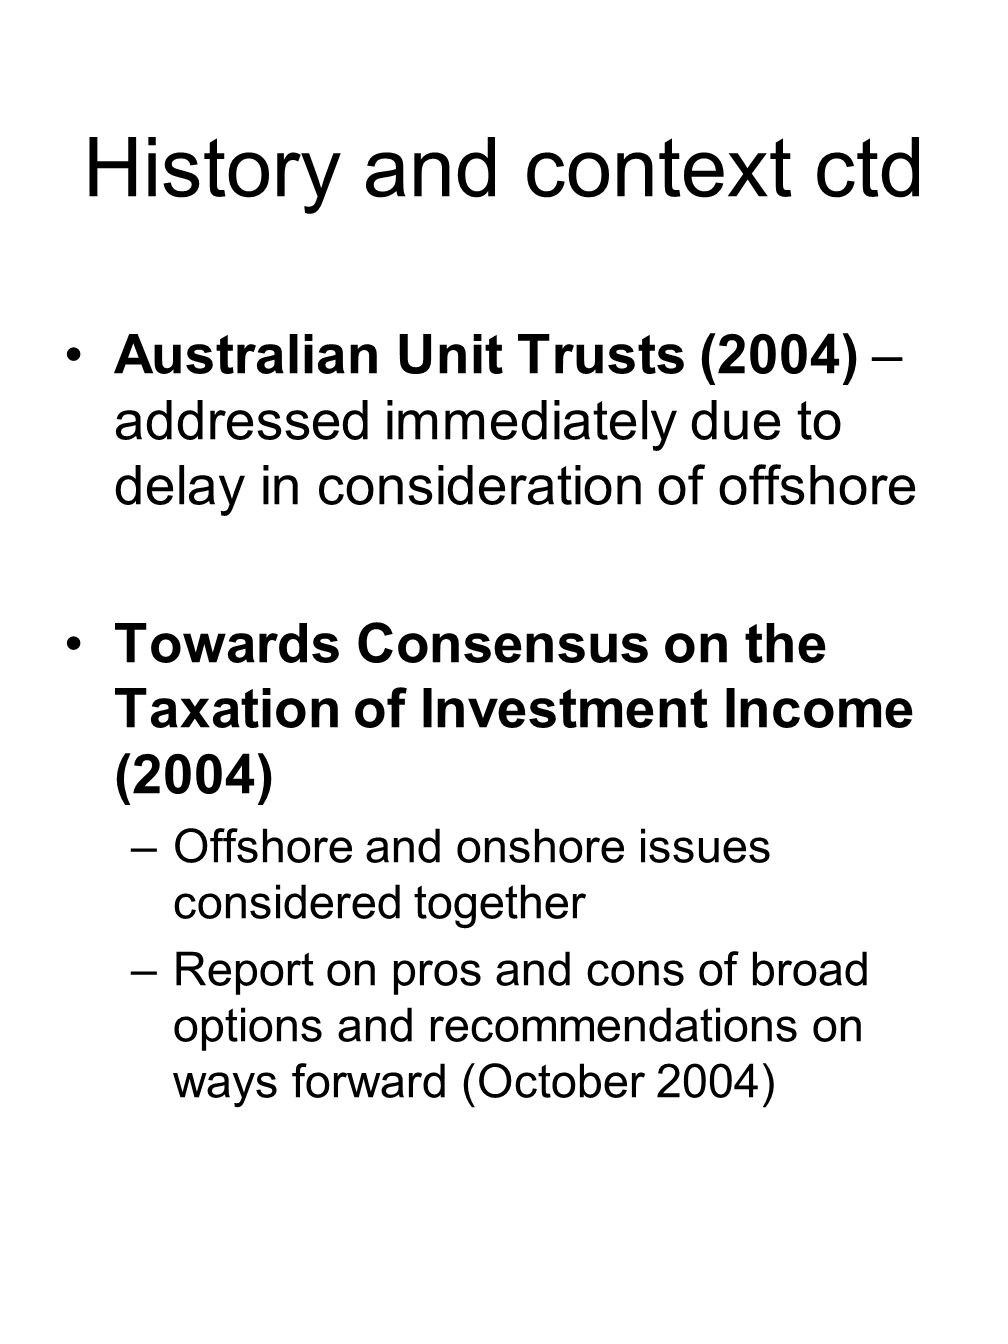 History and context ctd Australian Unit Trusts (2004) – addressed immediately due to delay in consideration of offshore Towards Consensus on the Taxation of Investment Income (2004) –Offshore and onshore issues considered together –Report on pros and cons of broad options and recommendations on ways forward (October 2004)